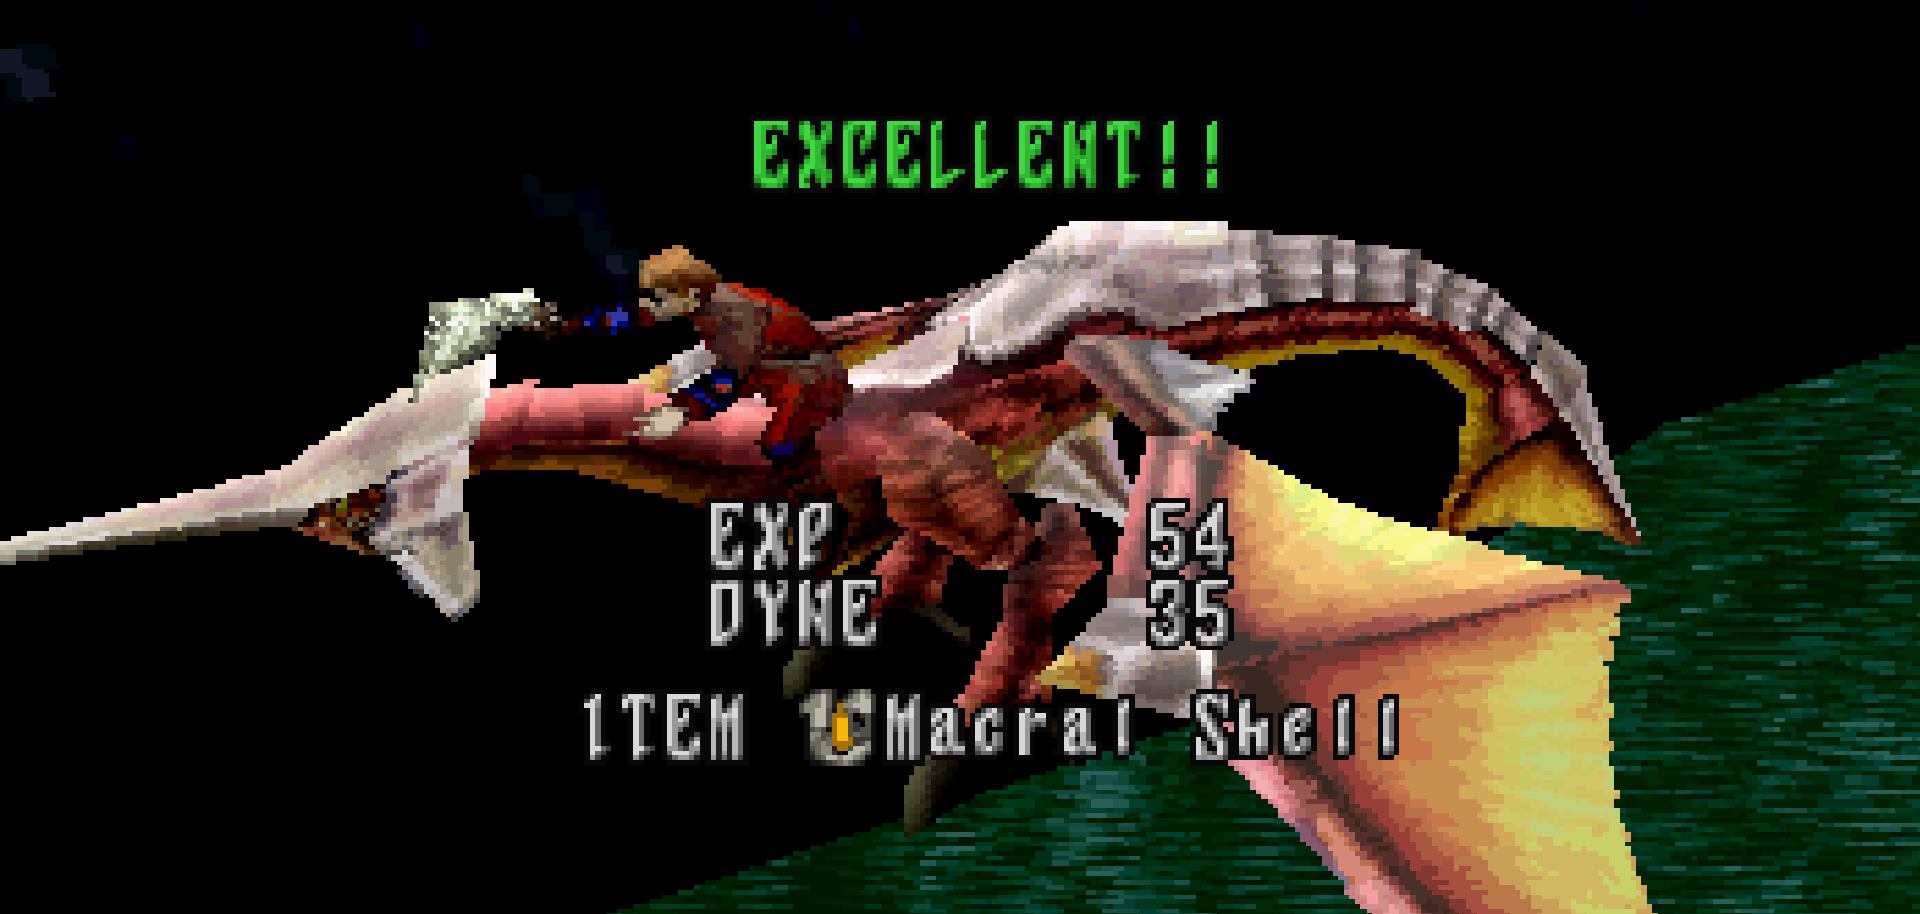 Excellent status in Panzer Dragoon Saga.